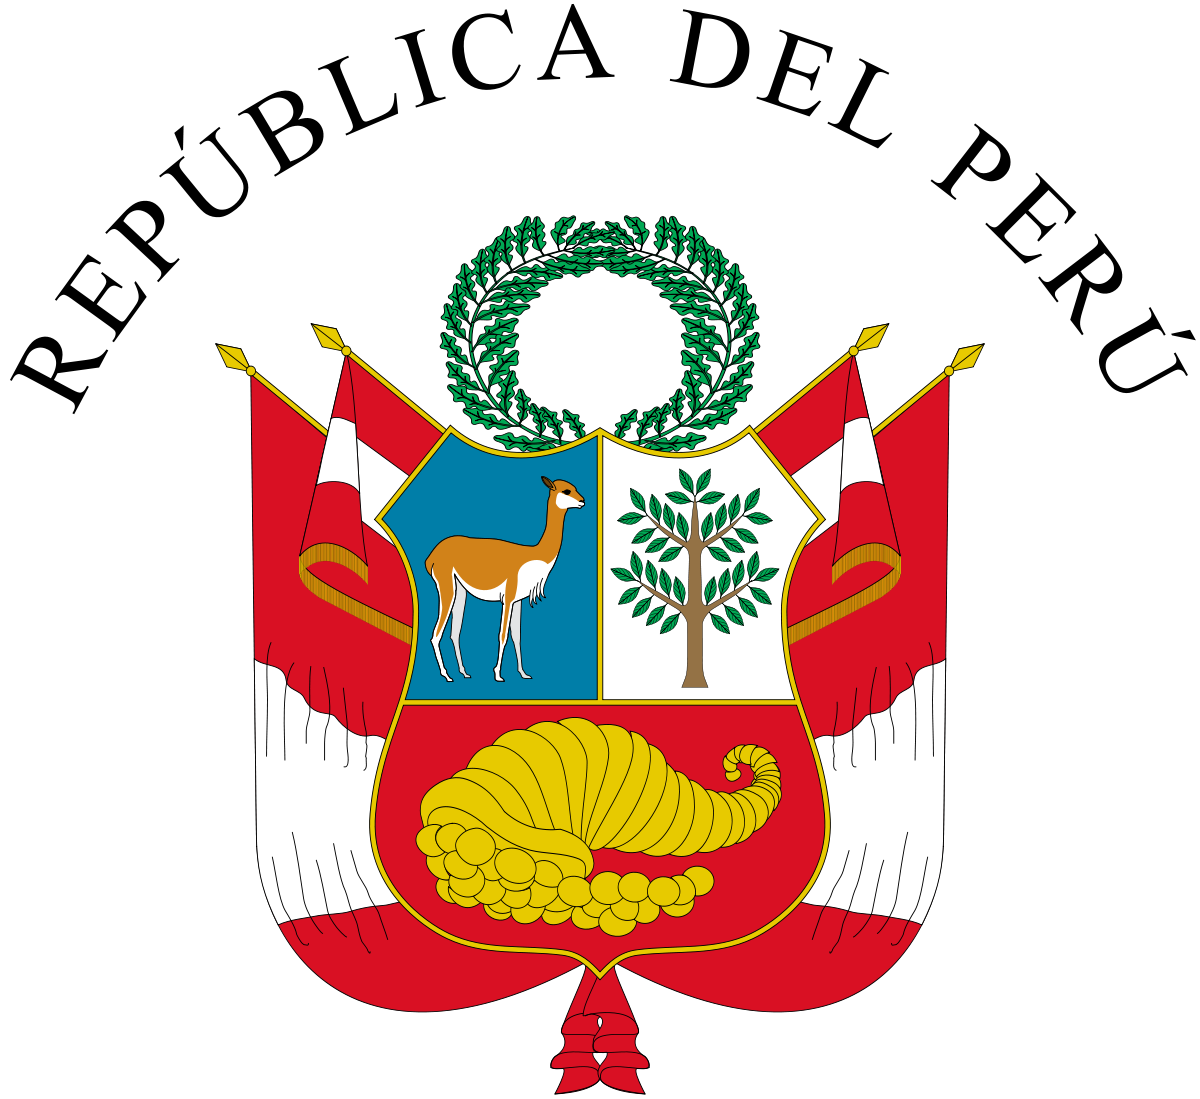 Court clipart chief legislator. Elections in peru wikipedia